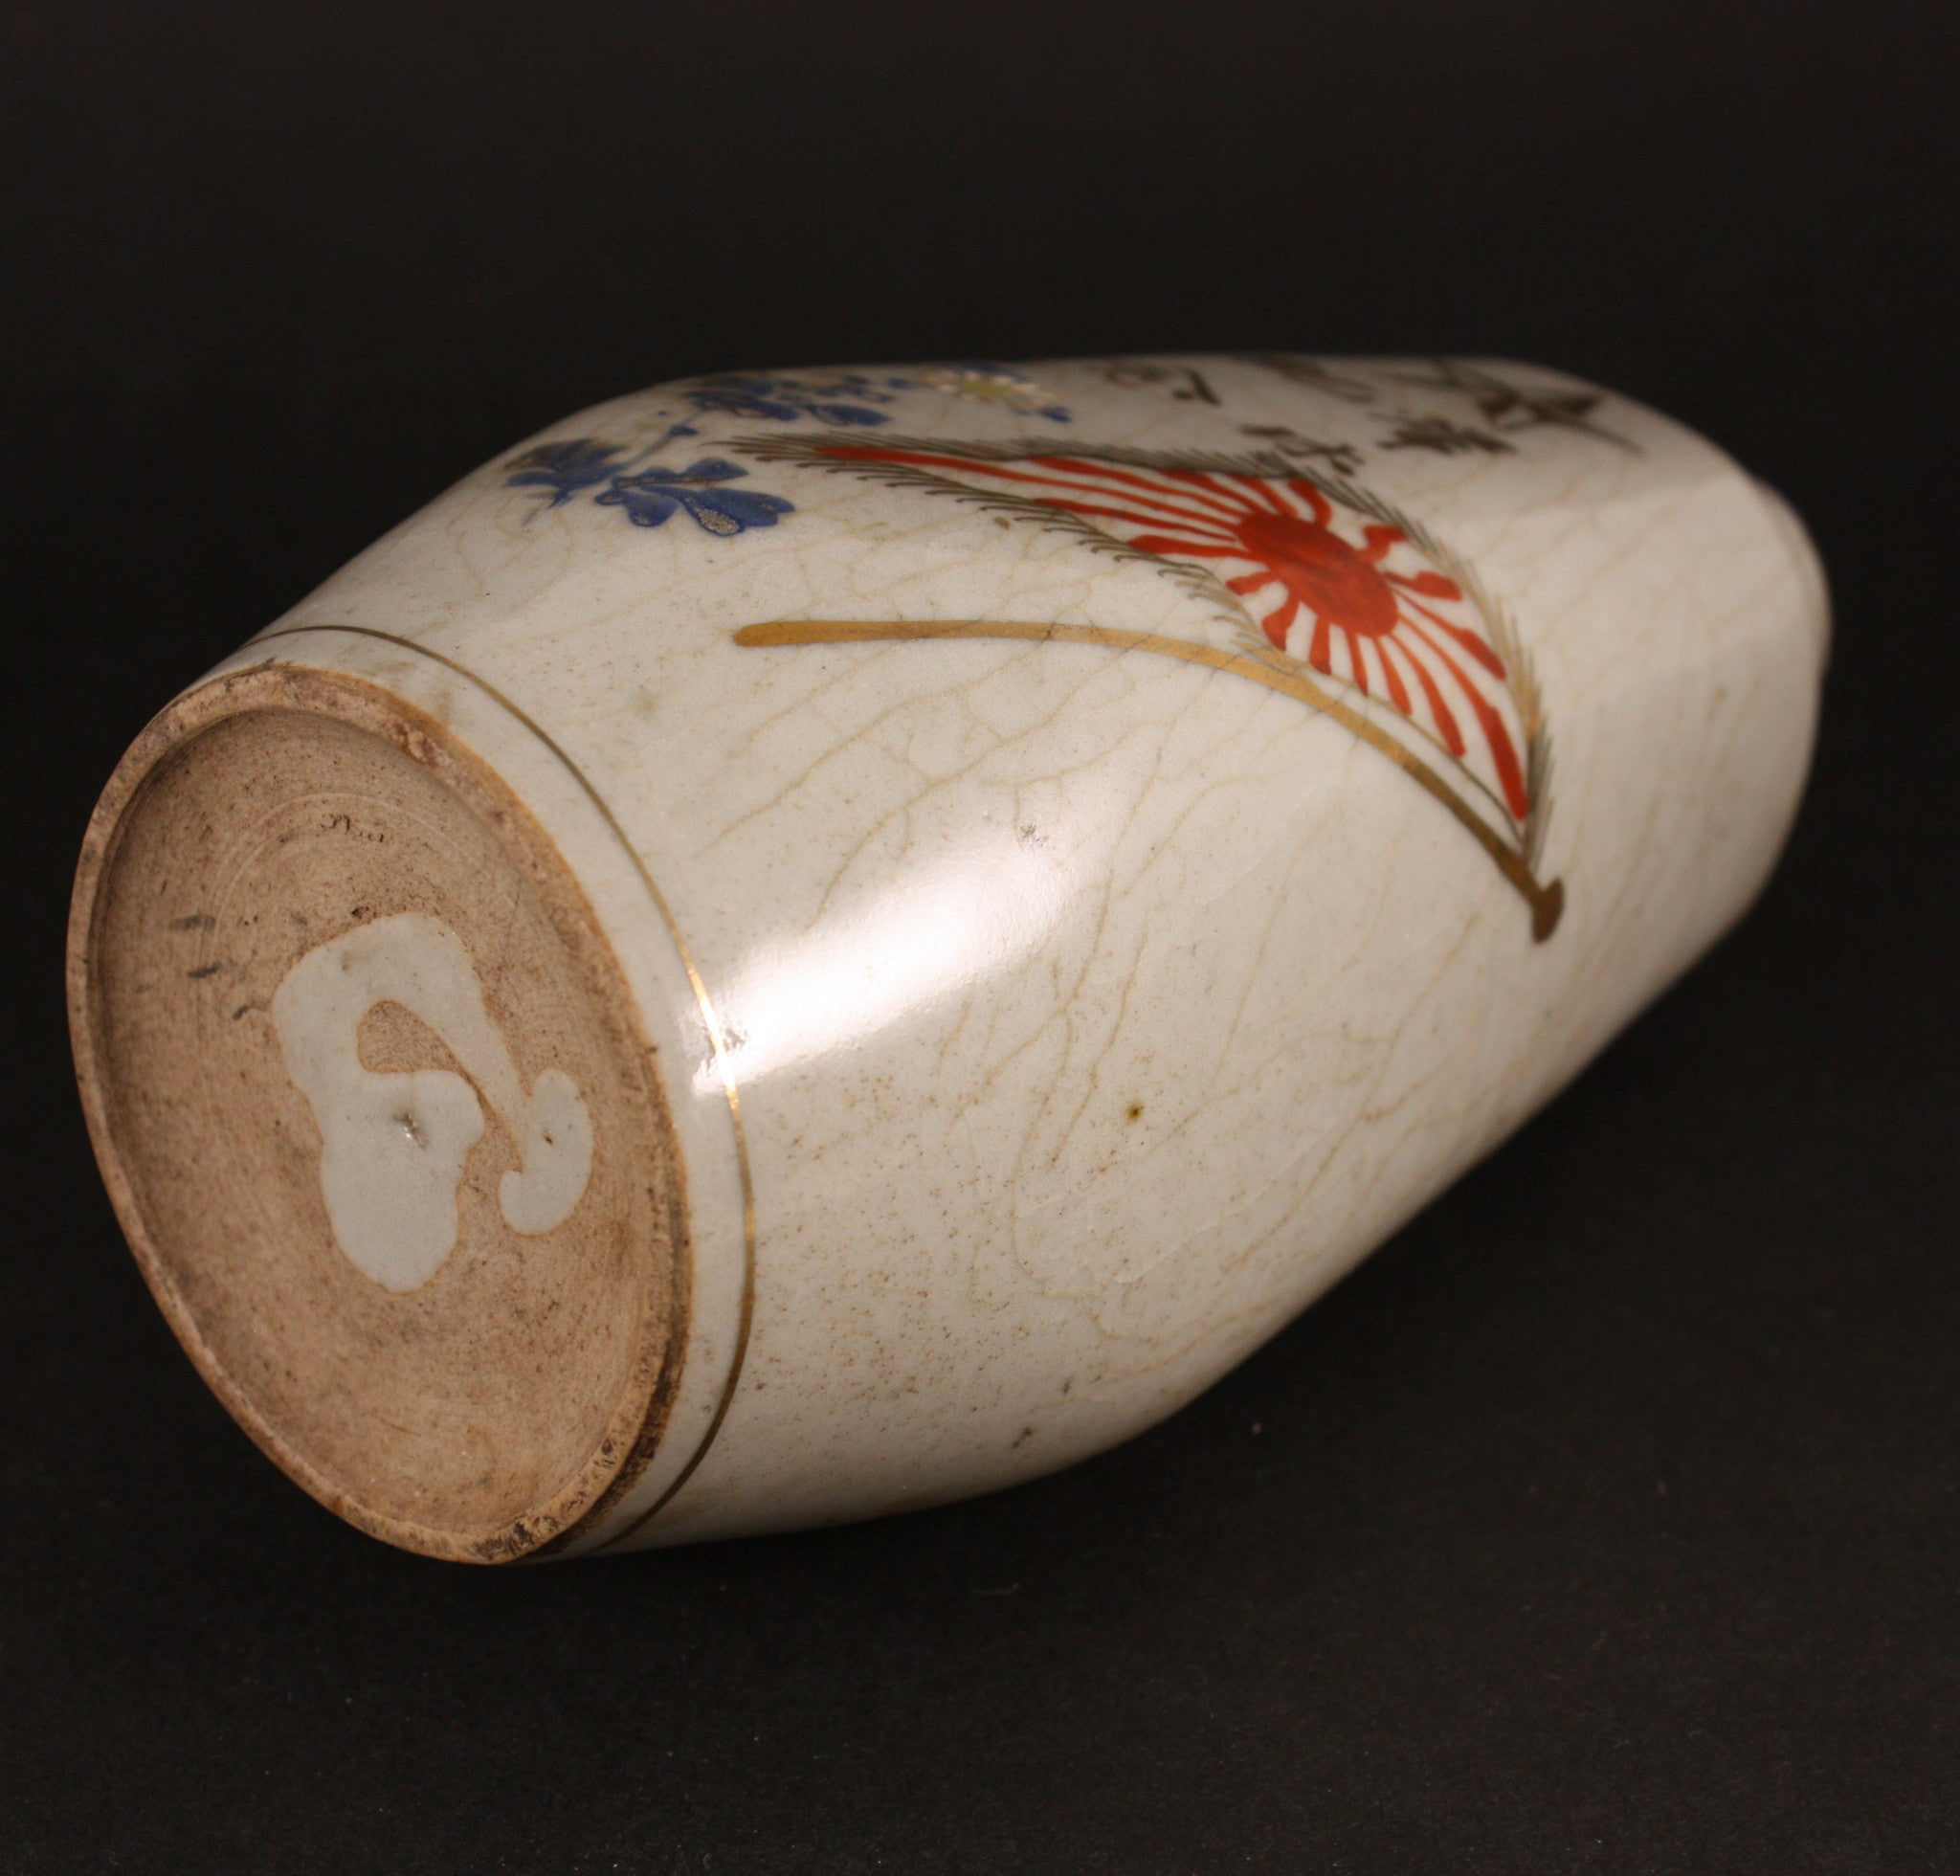 Antique Japanese Furlough Commemoration Infantry Army Sake Bottle